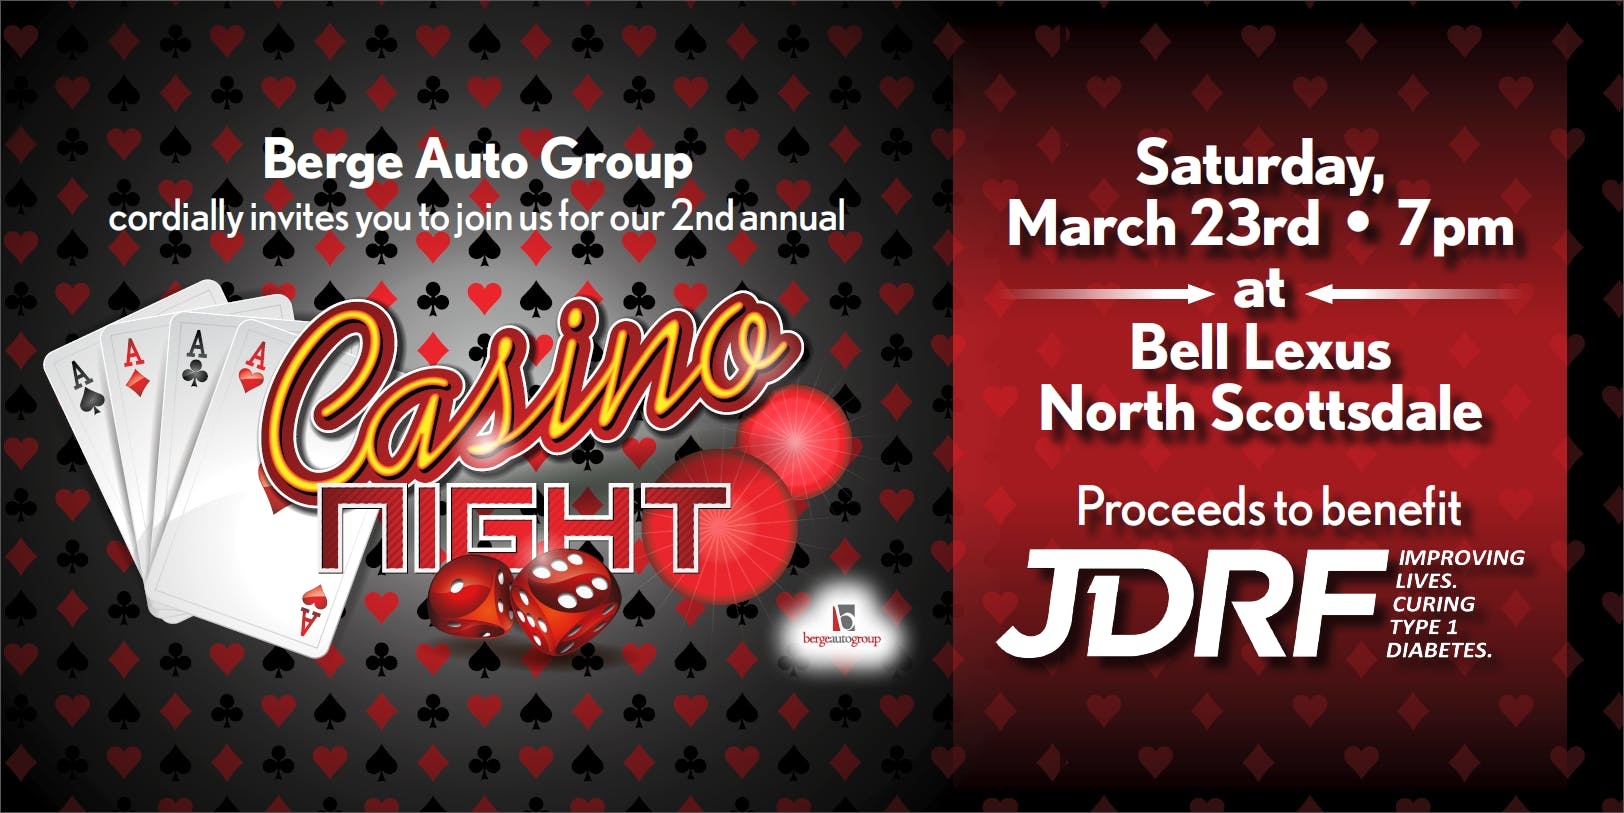 2nd Annual Casino Night for JDRF